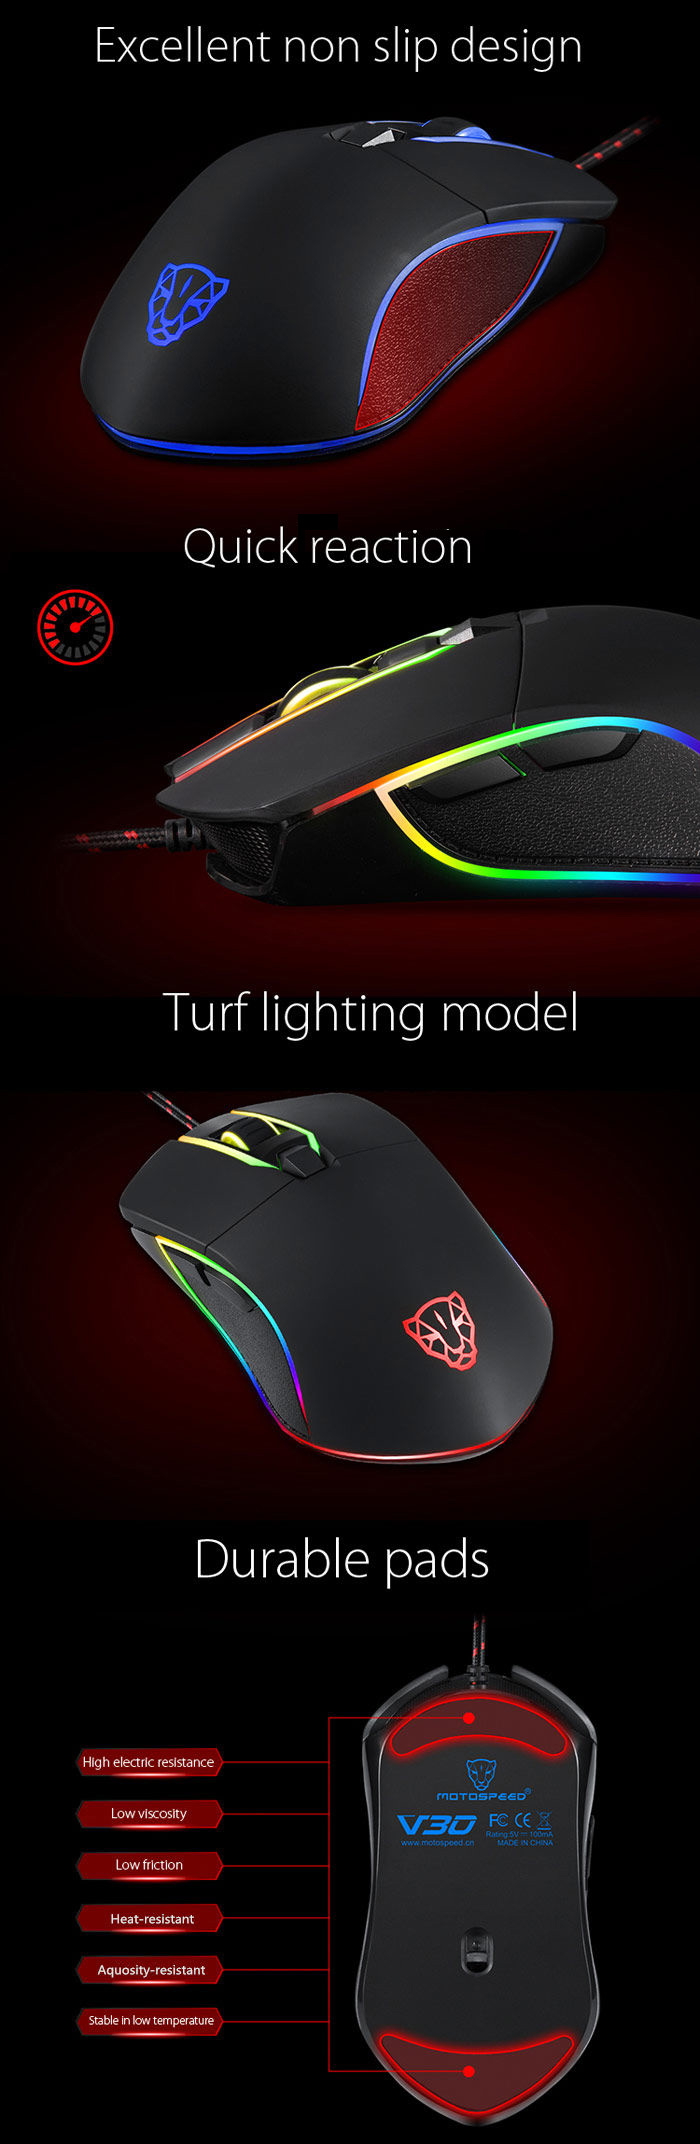 Motospeed V30 Professional USB Wired Gaming Mouse with LED Backlit Display